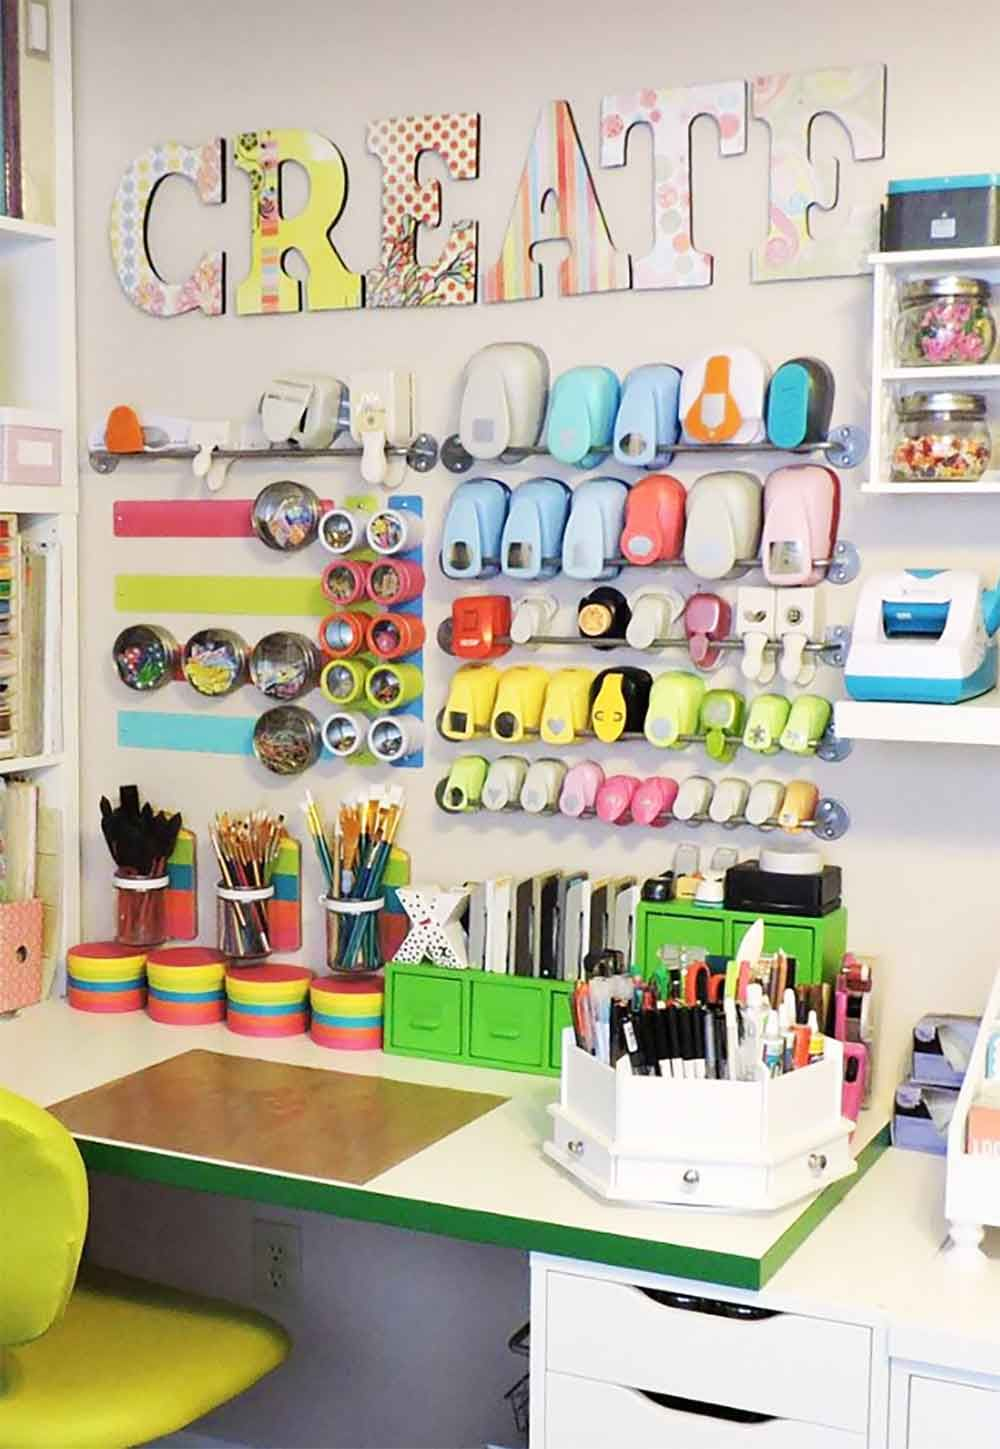 The Best Ikea Craft Room Storage Shelves Ideas Jennifer Maker Ikea Craft Room Ikea Craft Storage Sewing Room Design